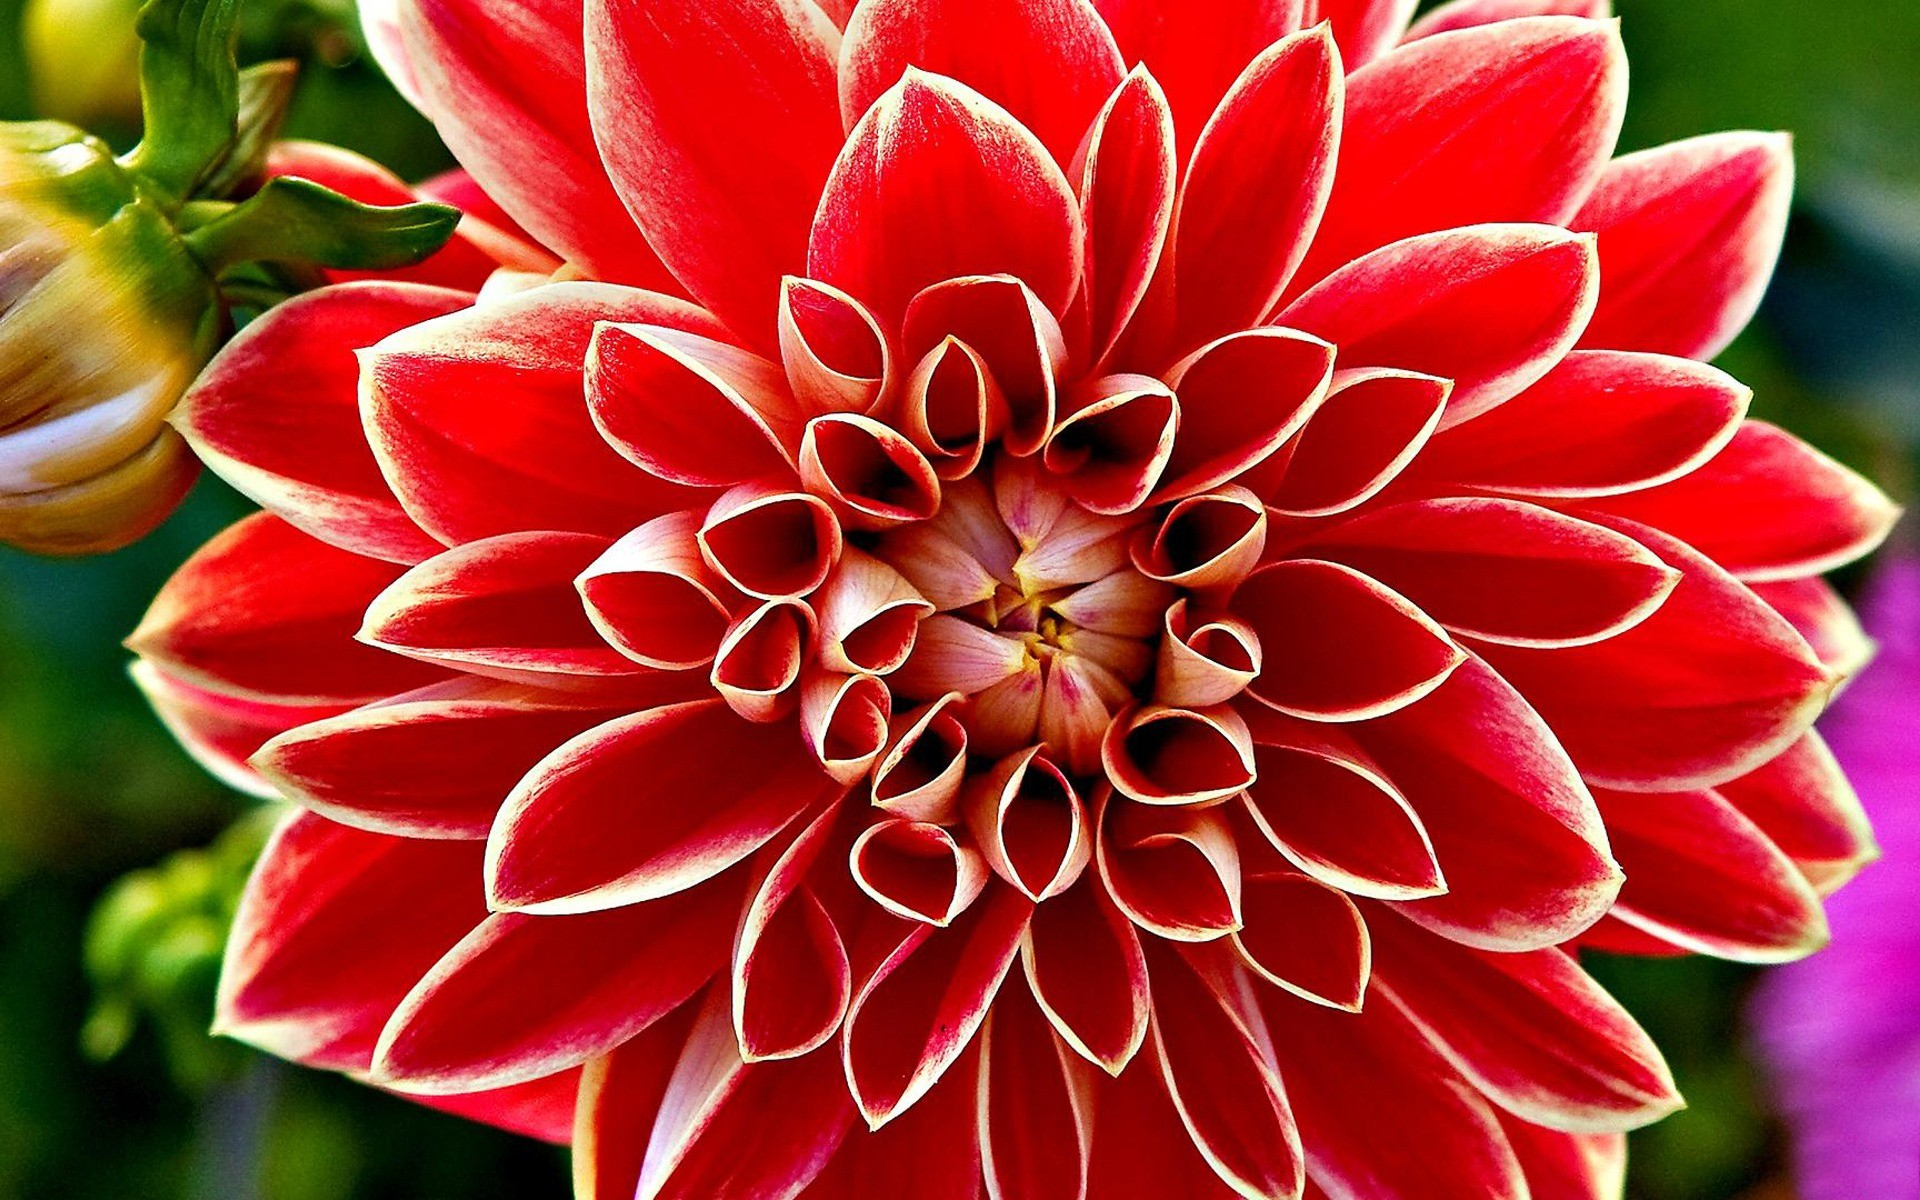 Iphone 4 3d Wallpaper Ios 7 Red Dahlia Wallpapers Hd Wallpapers Id 8894